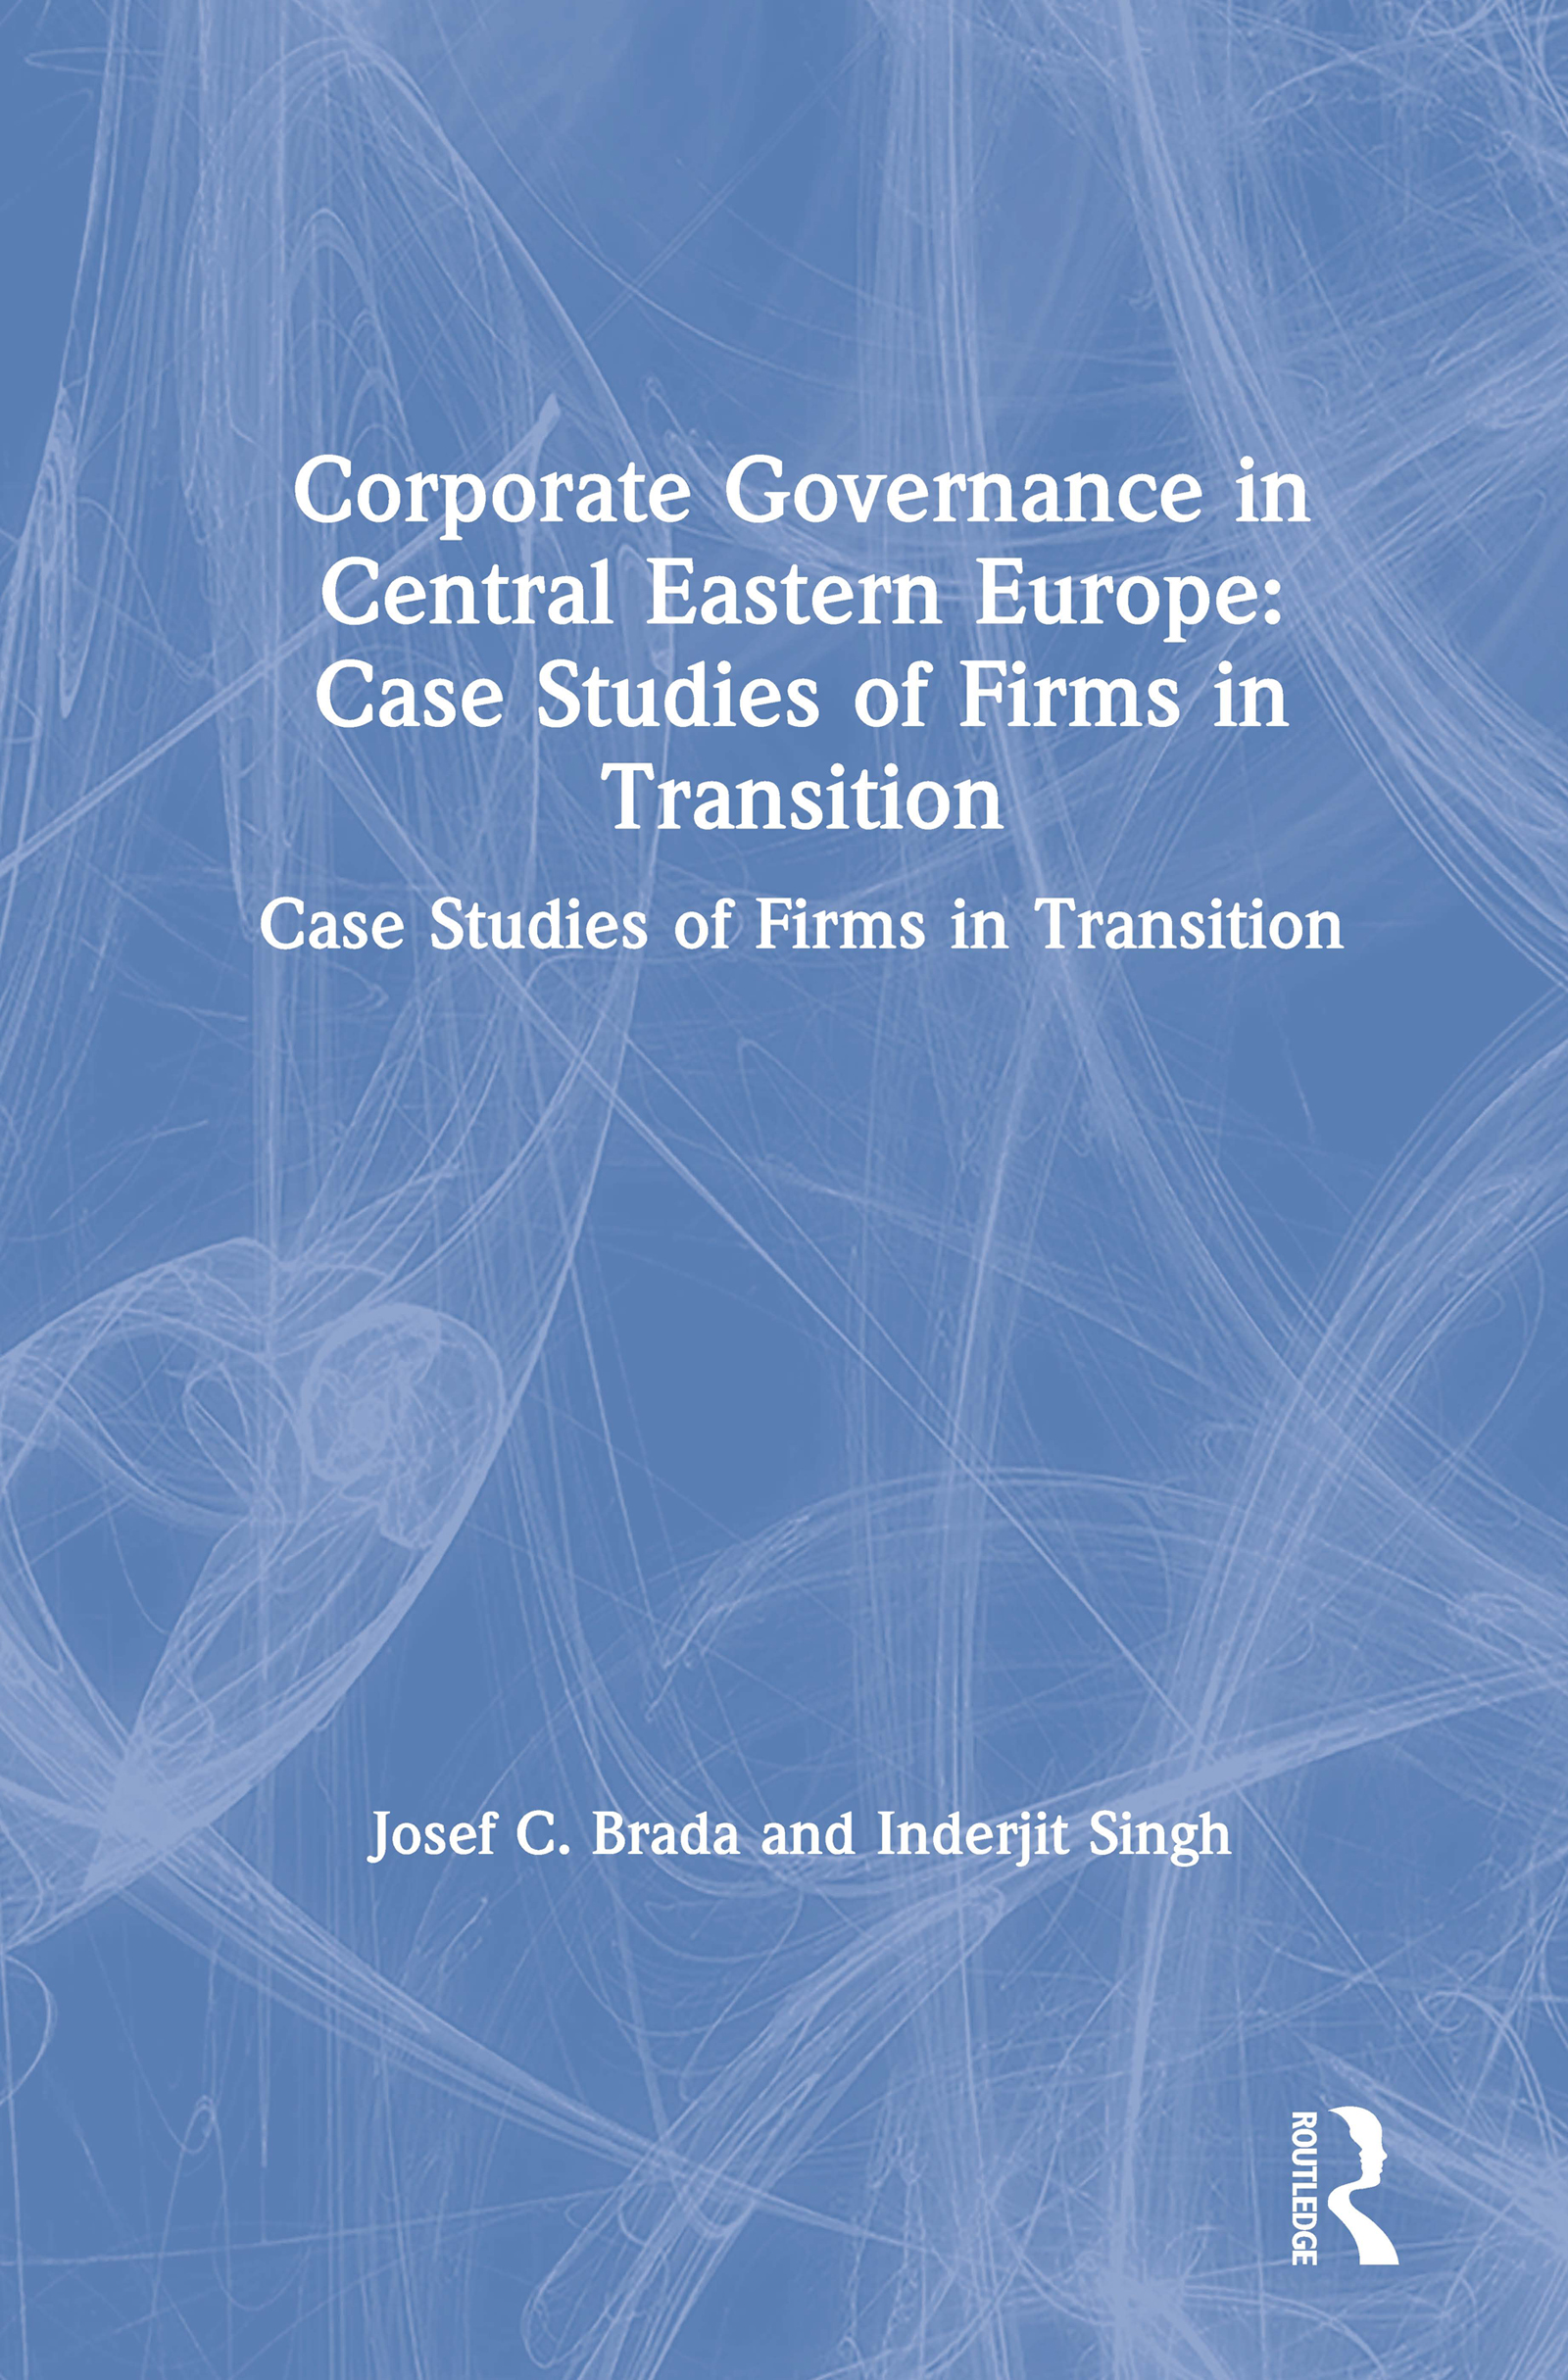 Corporate Governance in Central Eastern Europe: Case Studies of Firms in Transition: Case Studies of Firms in Transition book cover